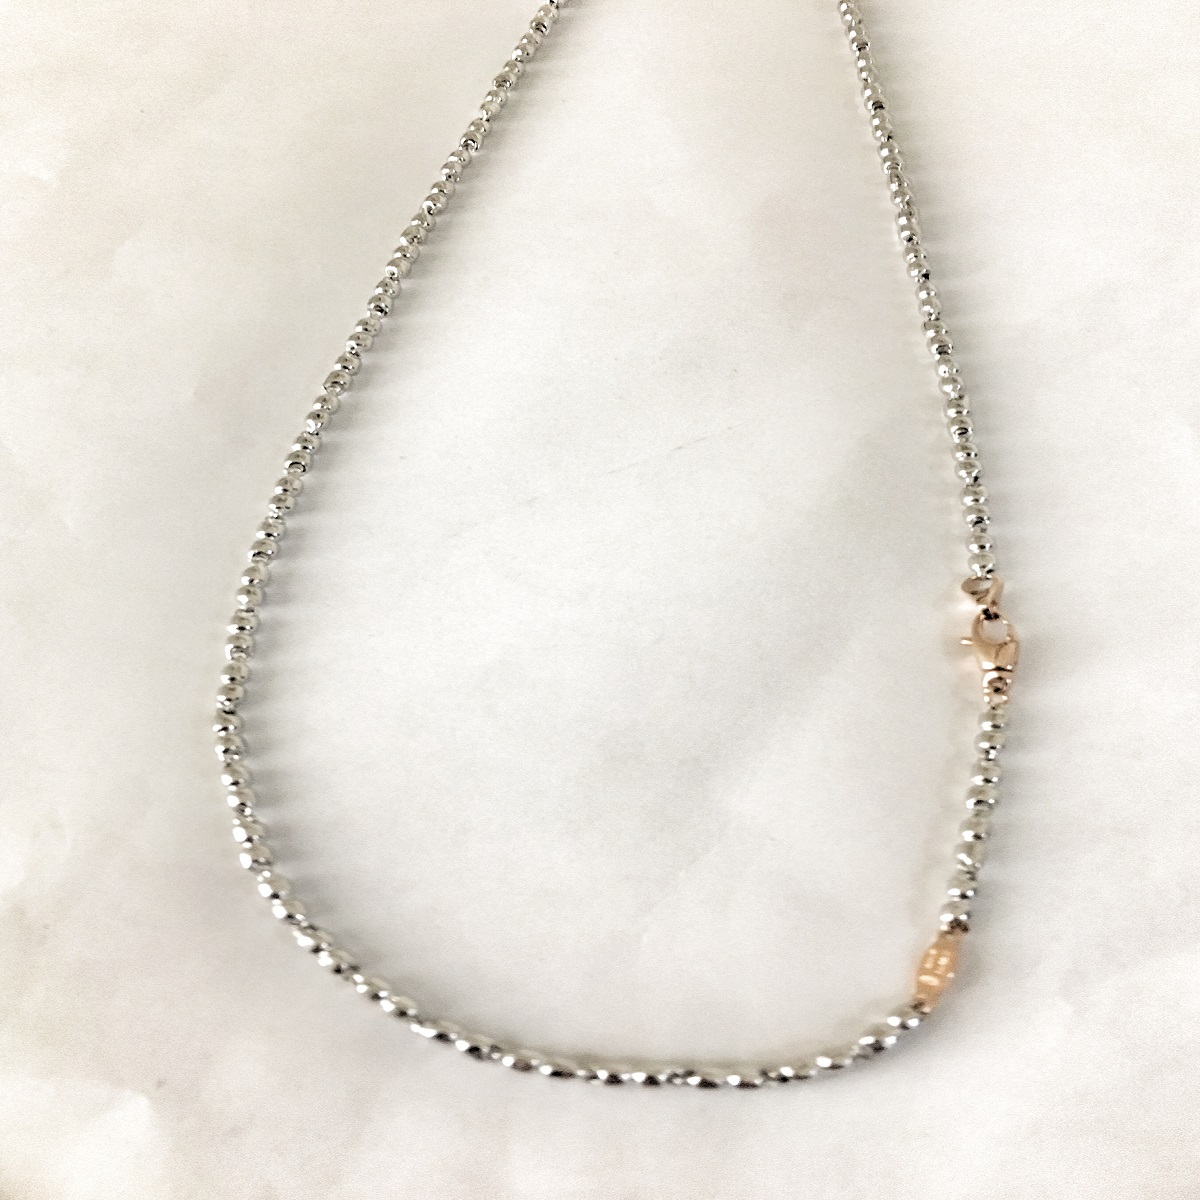 ZANCAN NECKLACE IN WHITE GOLD WITH CLOSURE ROSE GOLD EC507BR